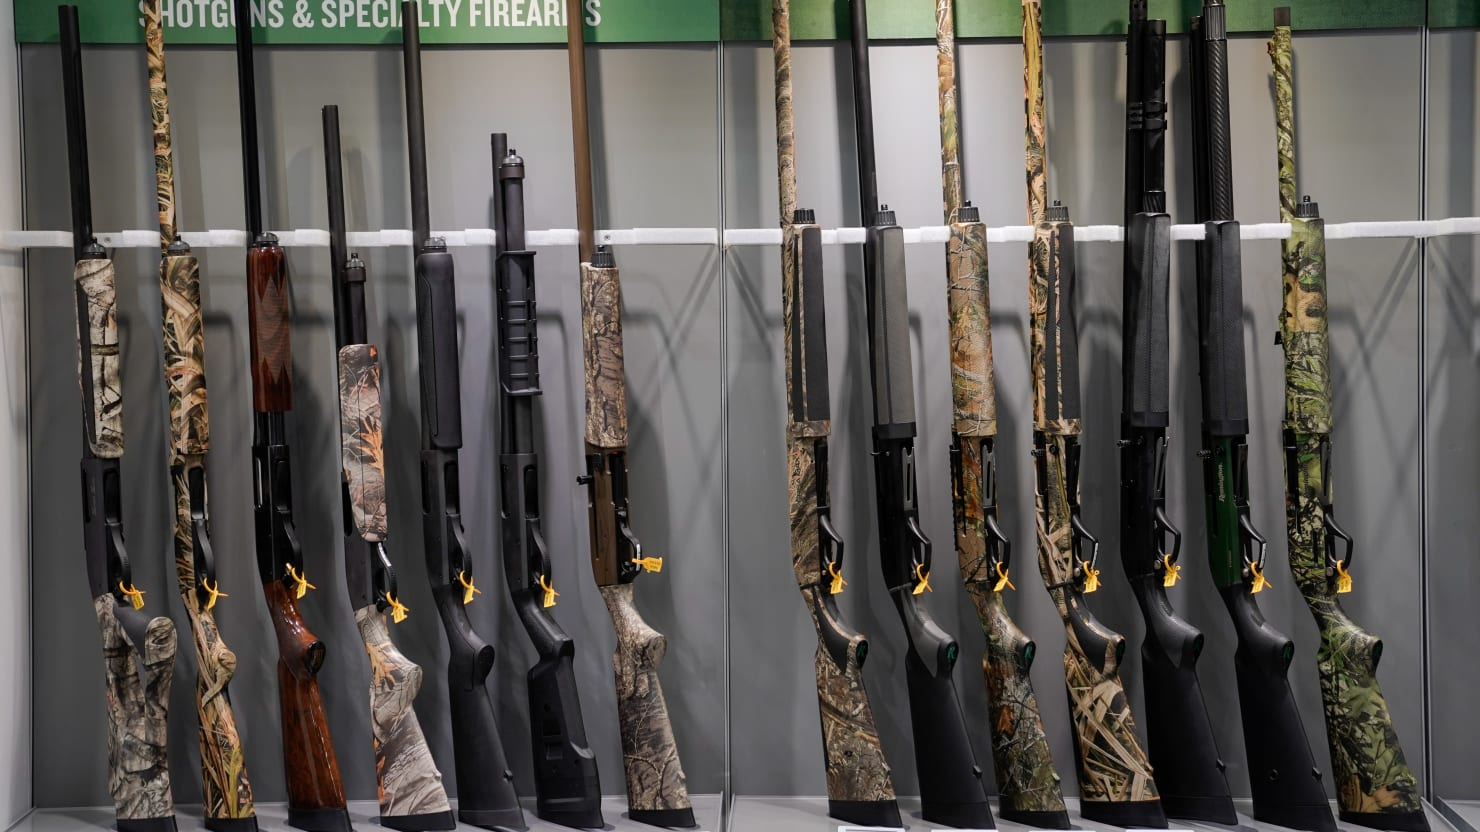 NRA Reportedly Nearly $11 Million in Debt